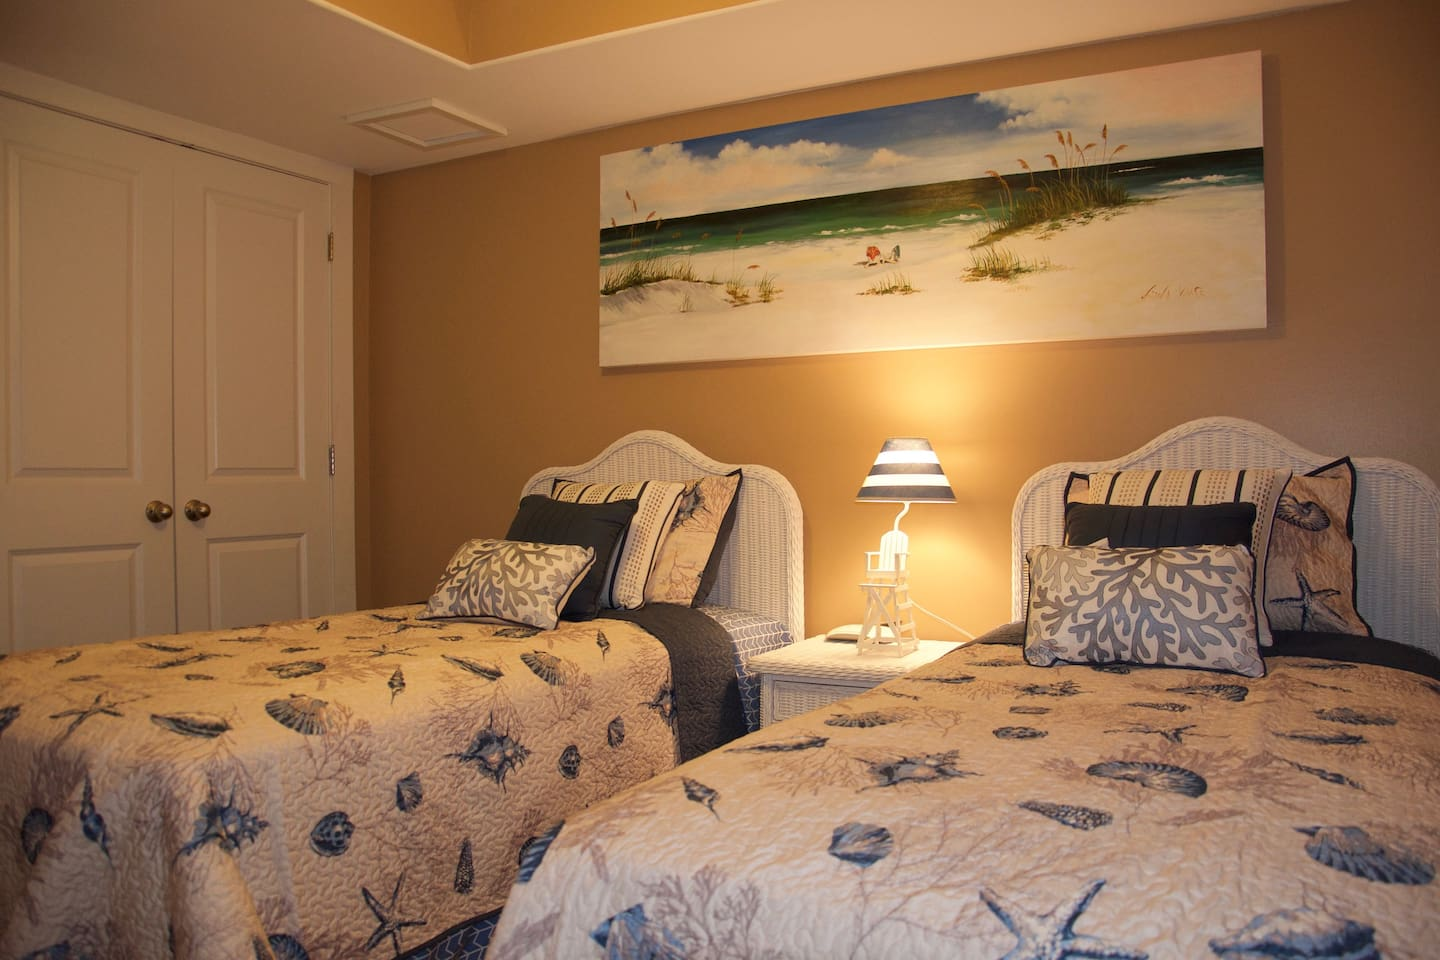 Second bedroom - 2 twin beds and large spacious closet.  Cable TV.